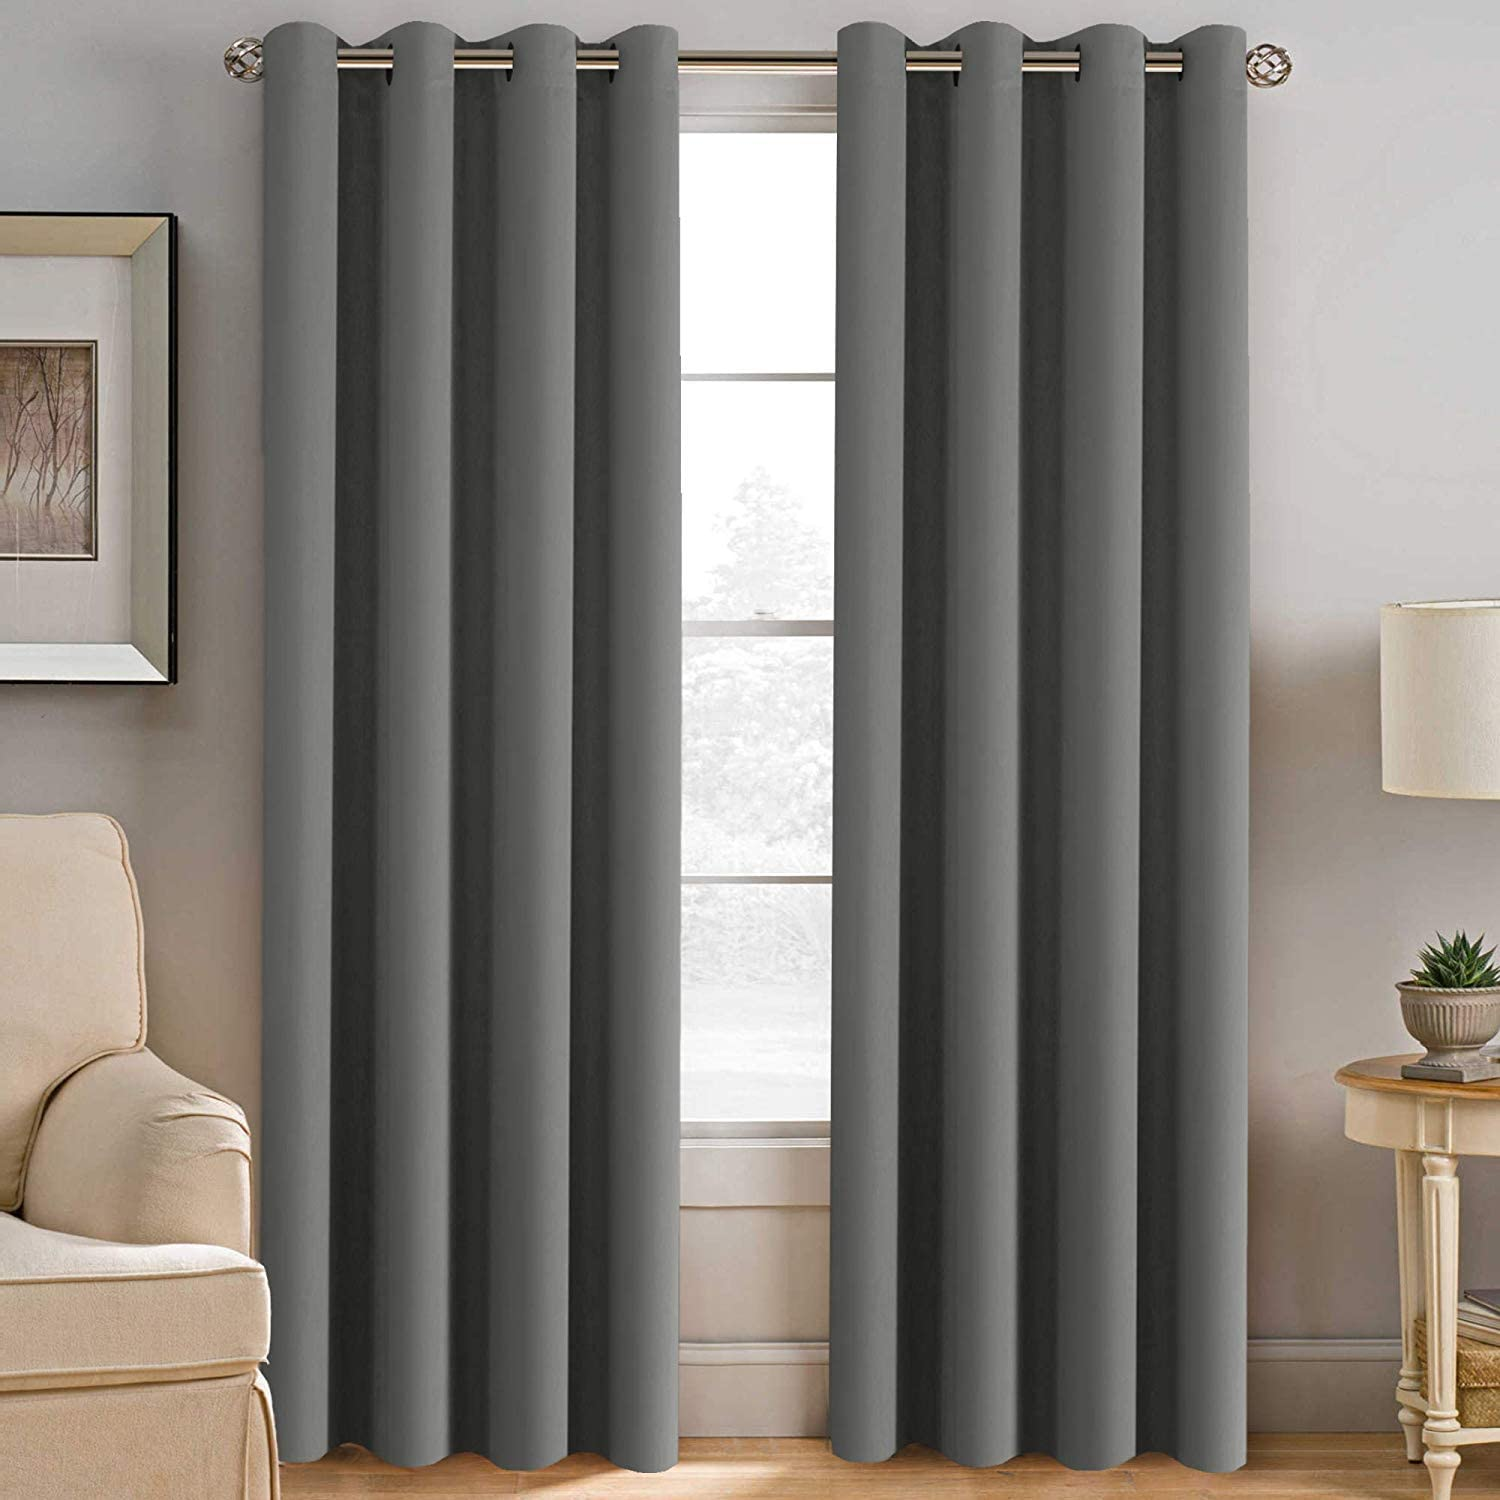 """INVACHI 2 Panels Super Soft Thermal Insulated Window Treatment Bedroom Curtains Blackout Eyelet Blackout Curtains for Livingroom (90"""" Wide X 90"""" Drop, Dark Grey)"""